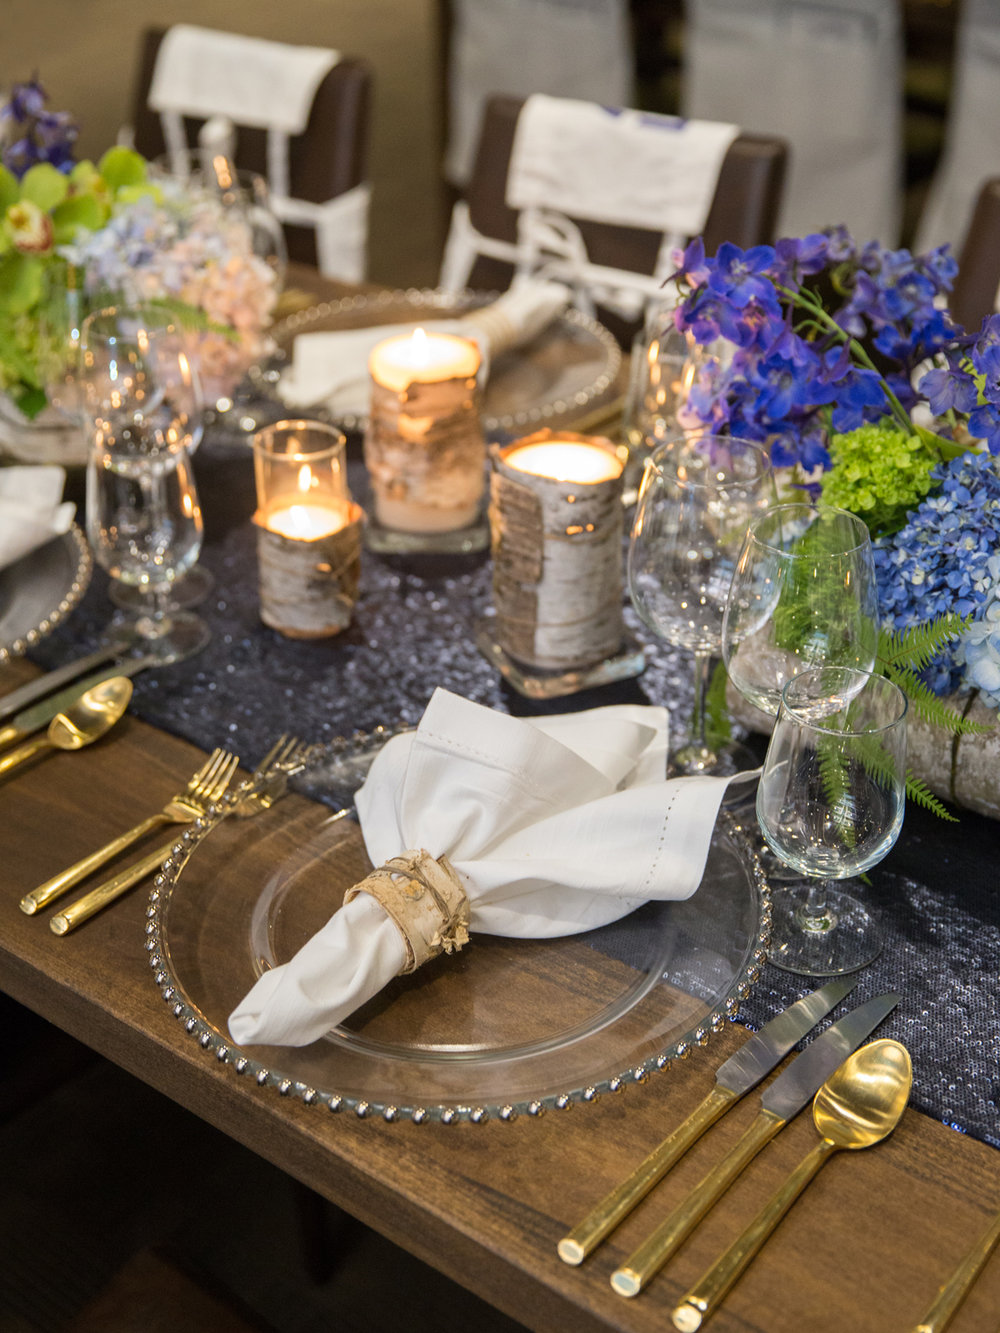 0386_Blue and White Table Setting.jpg